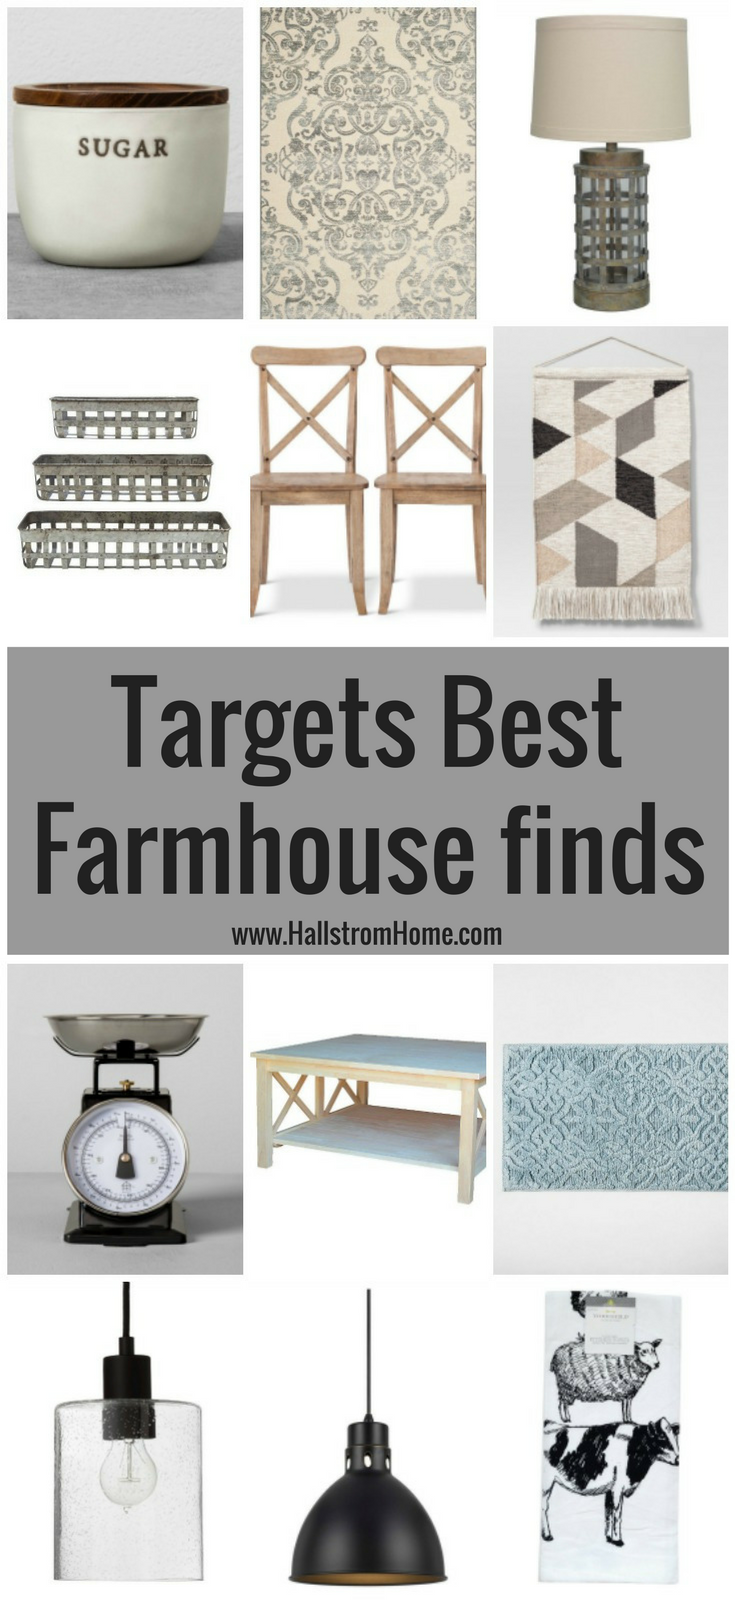 Targets Best Farmhouse Finds